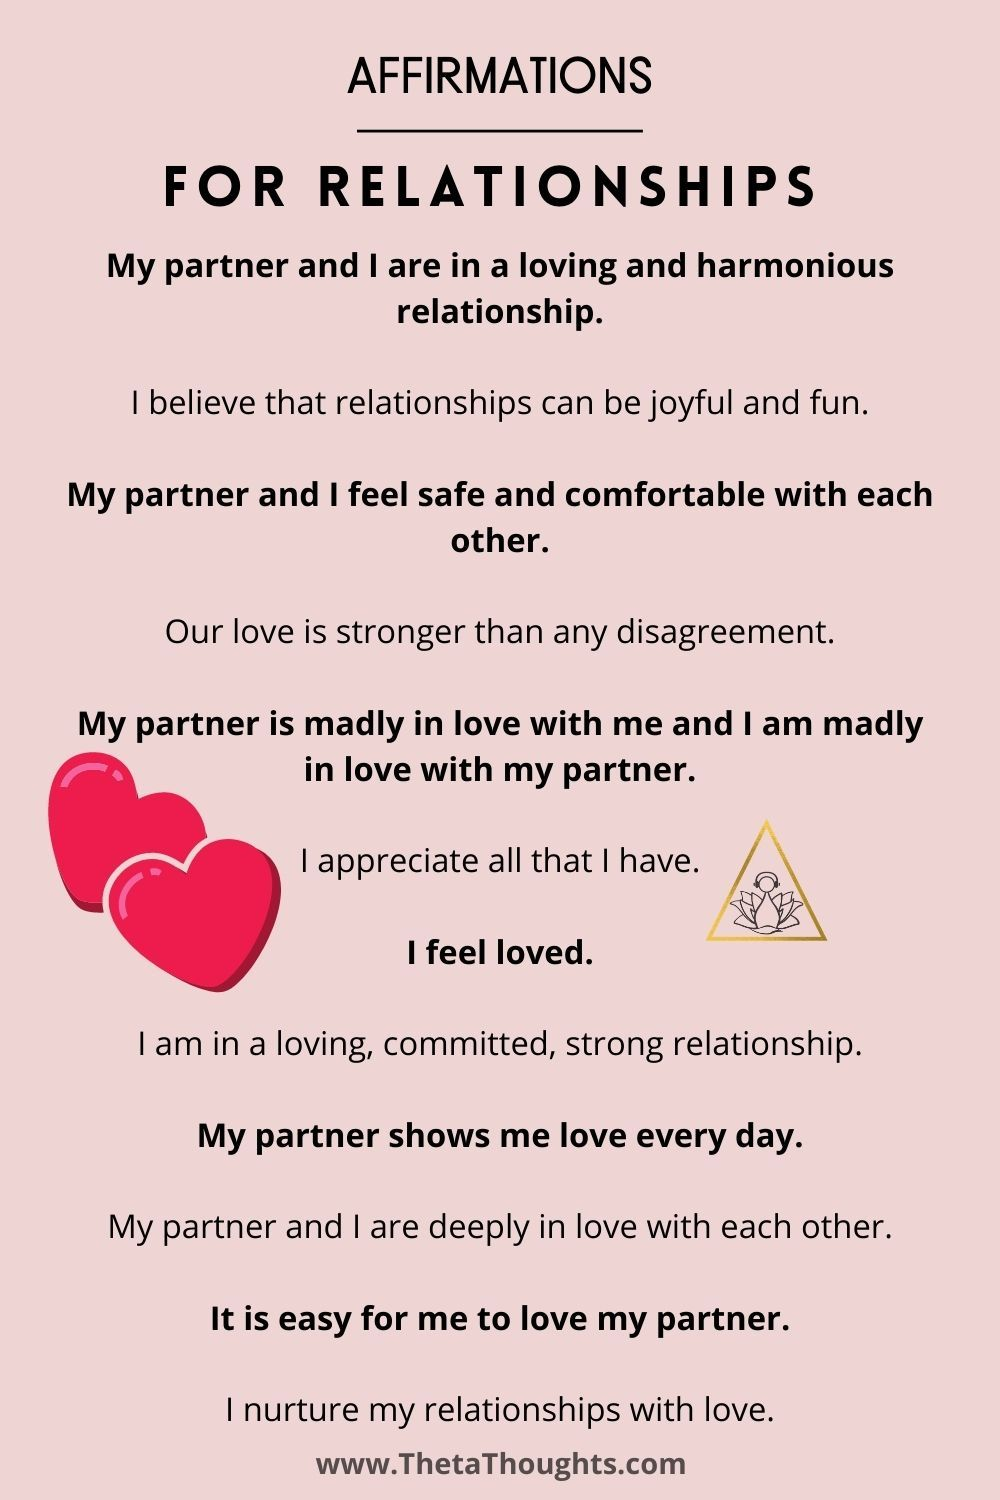 Positive affirmations to strengthen your relationships and love life.